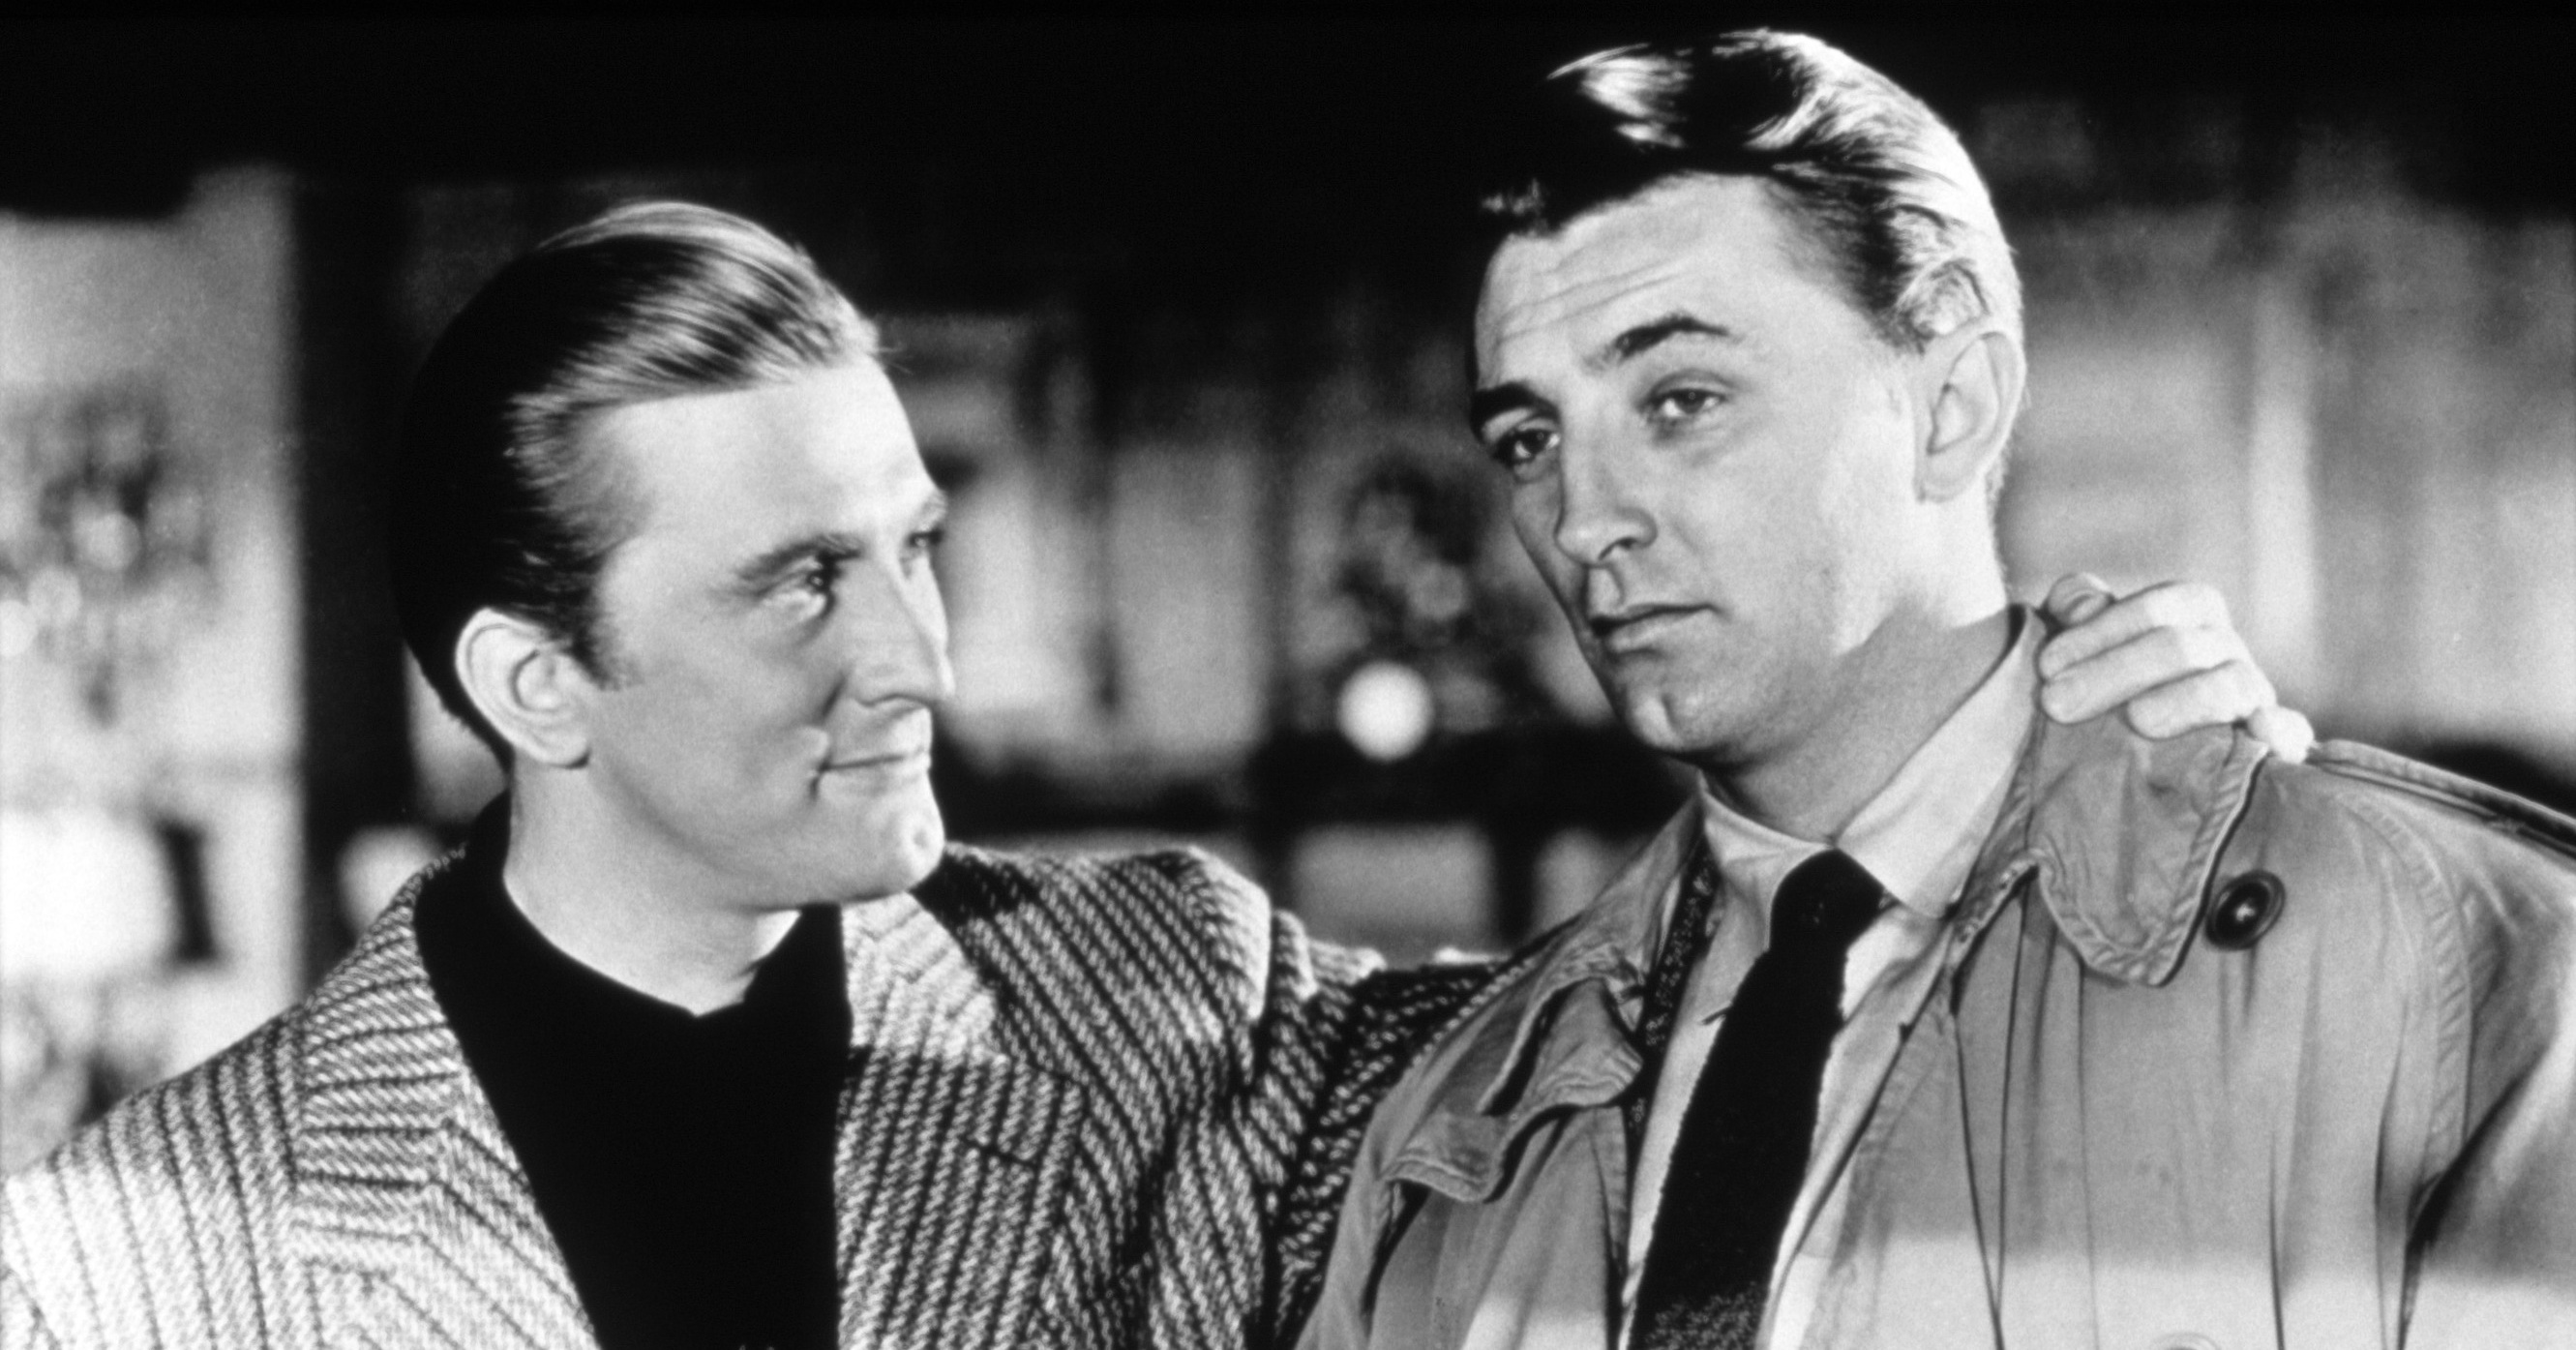 out-of-the-past-kirk-douglas-robert-5-rcm0x1920u